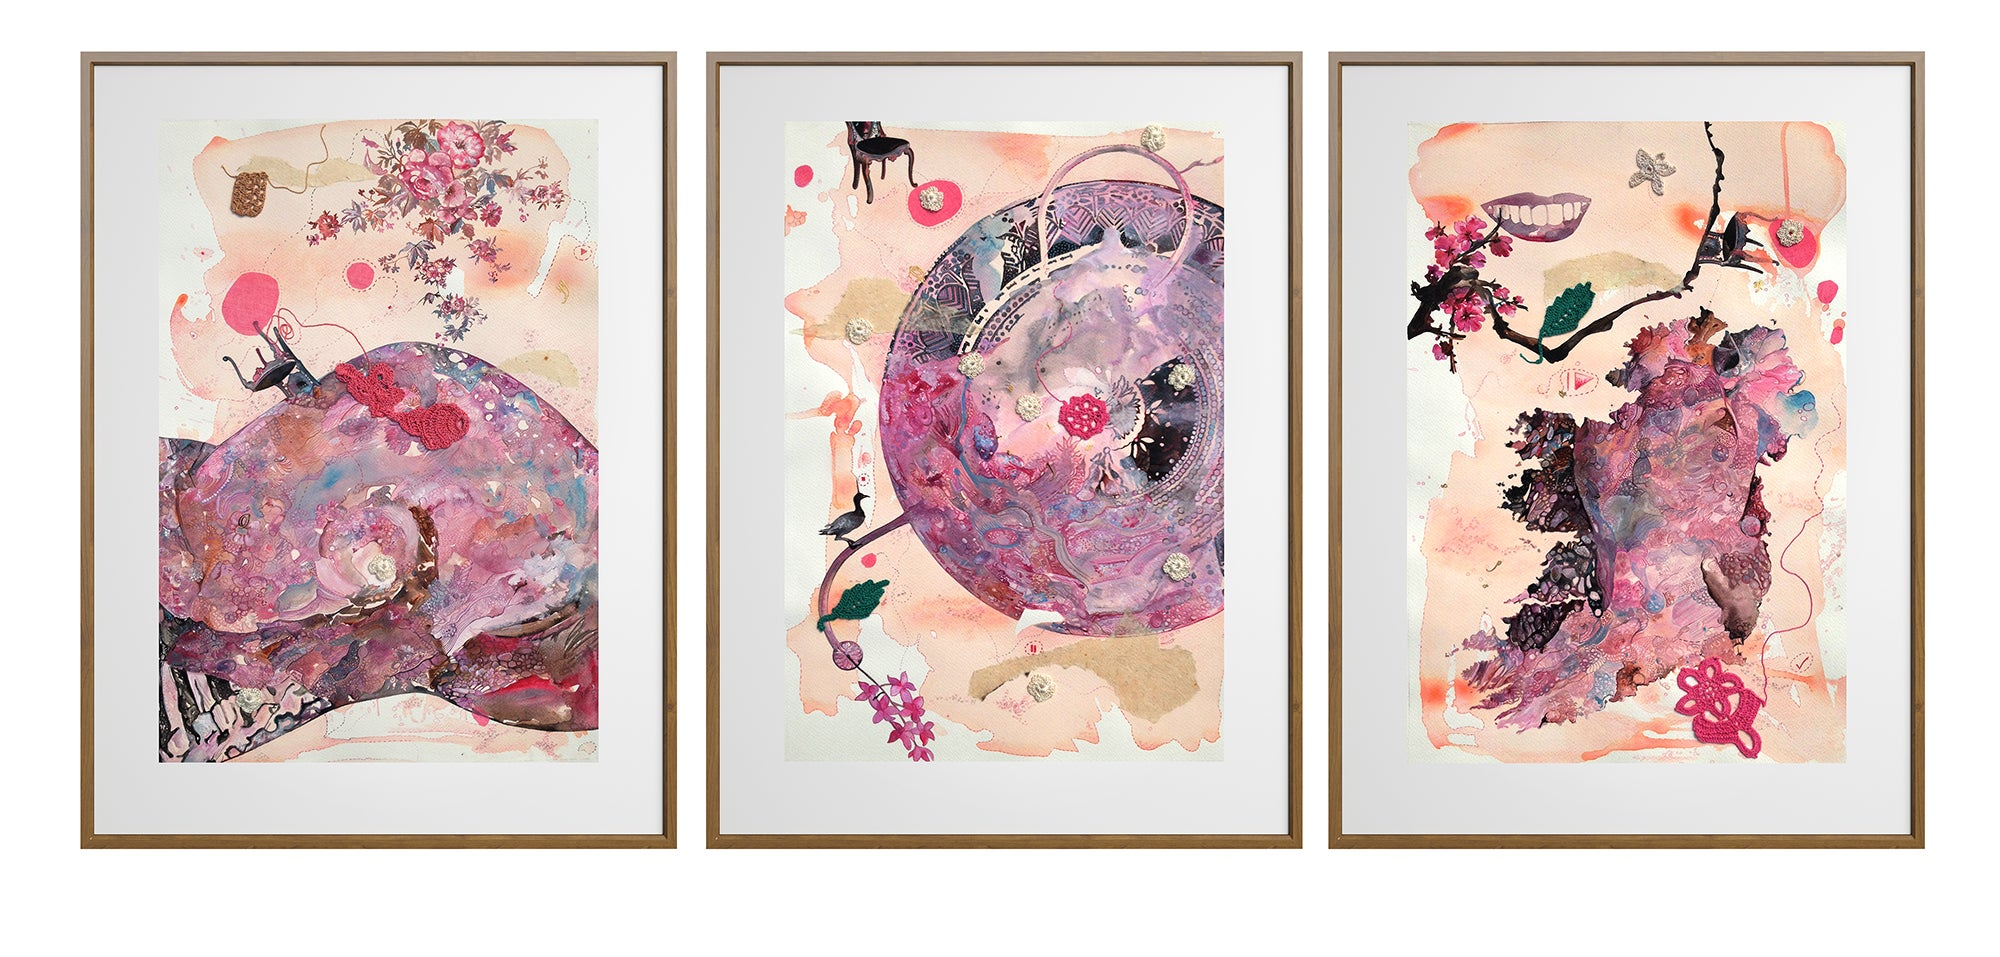 """My Body, My Soul"" - Gorgeous Triptych by Indian Artist - Framed in Light Wood"